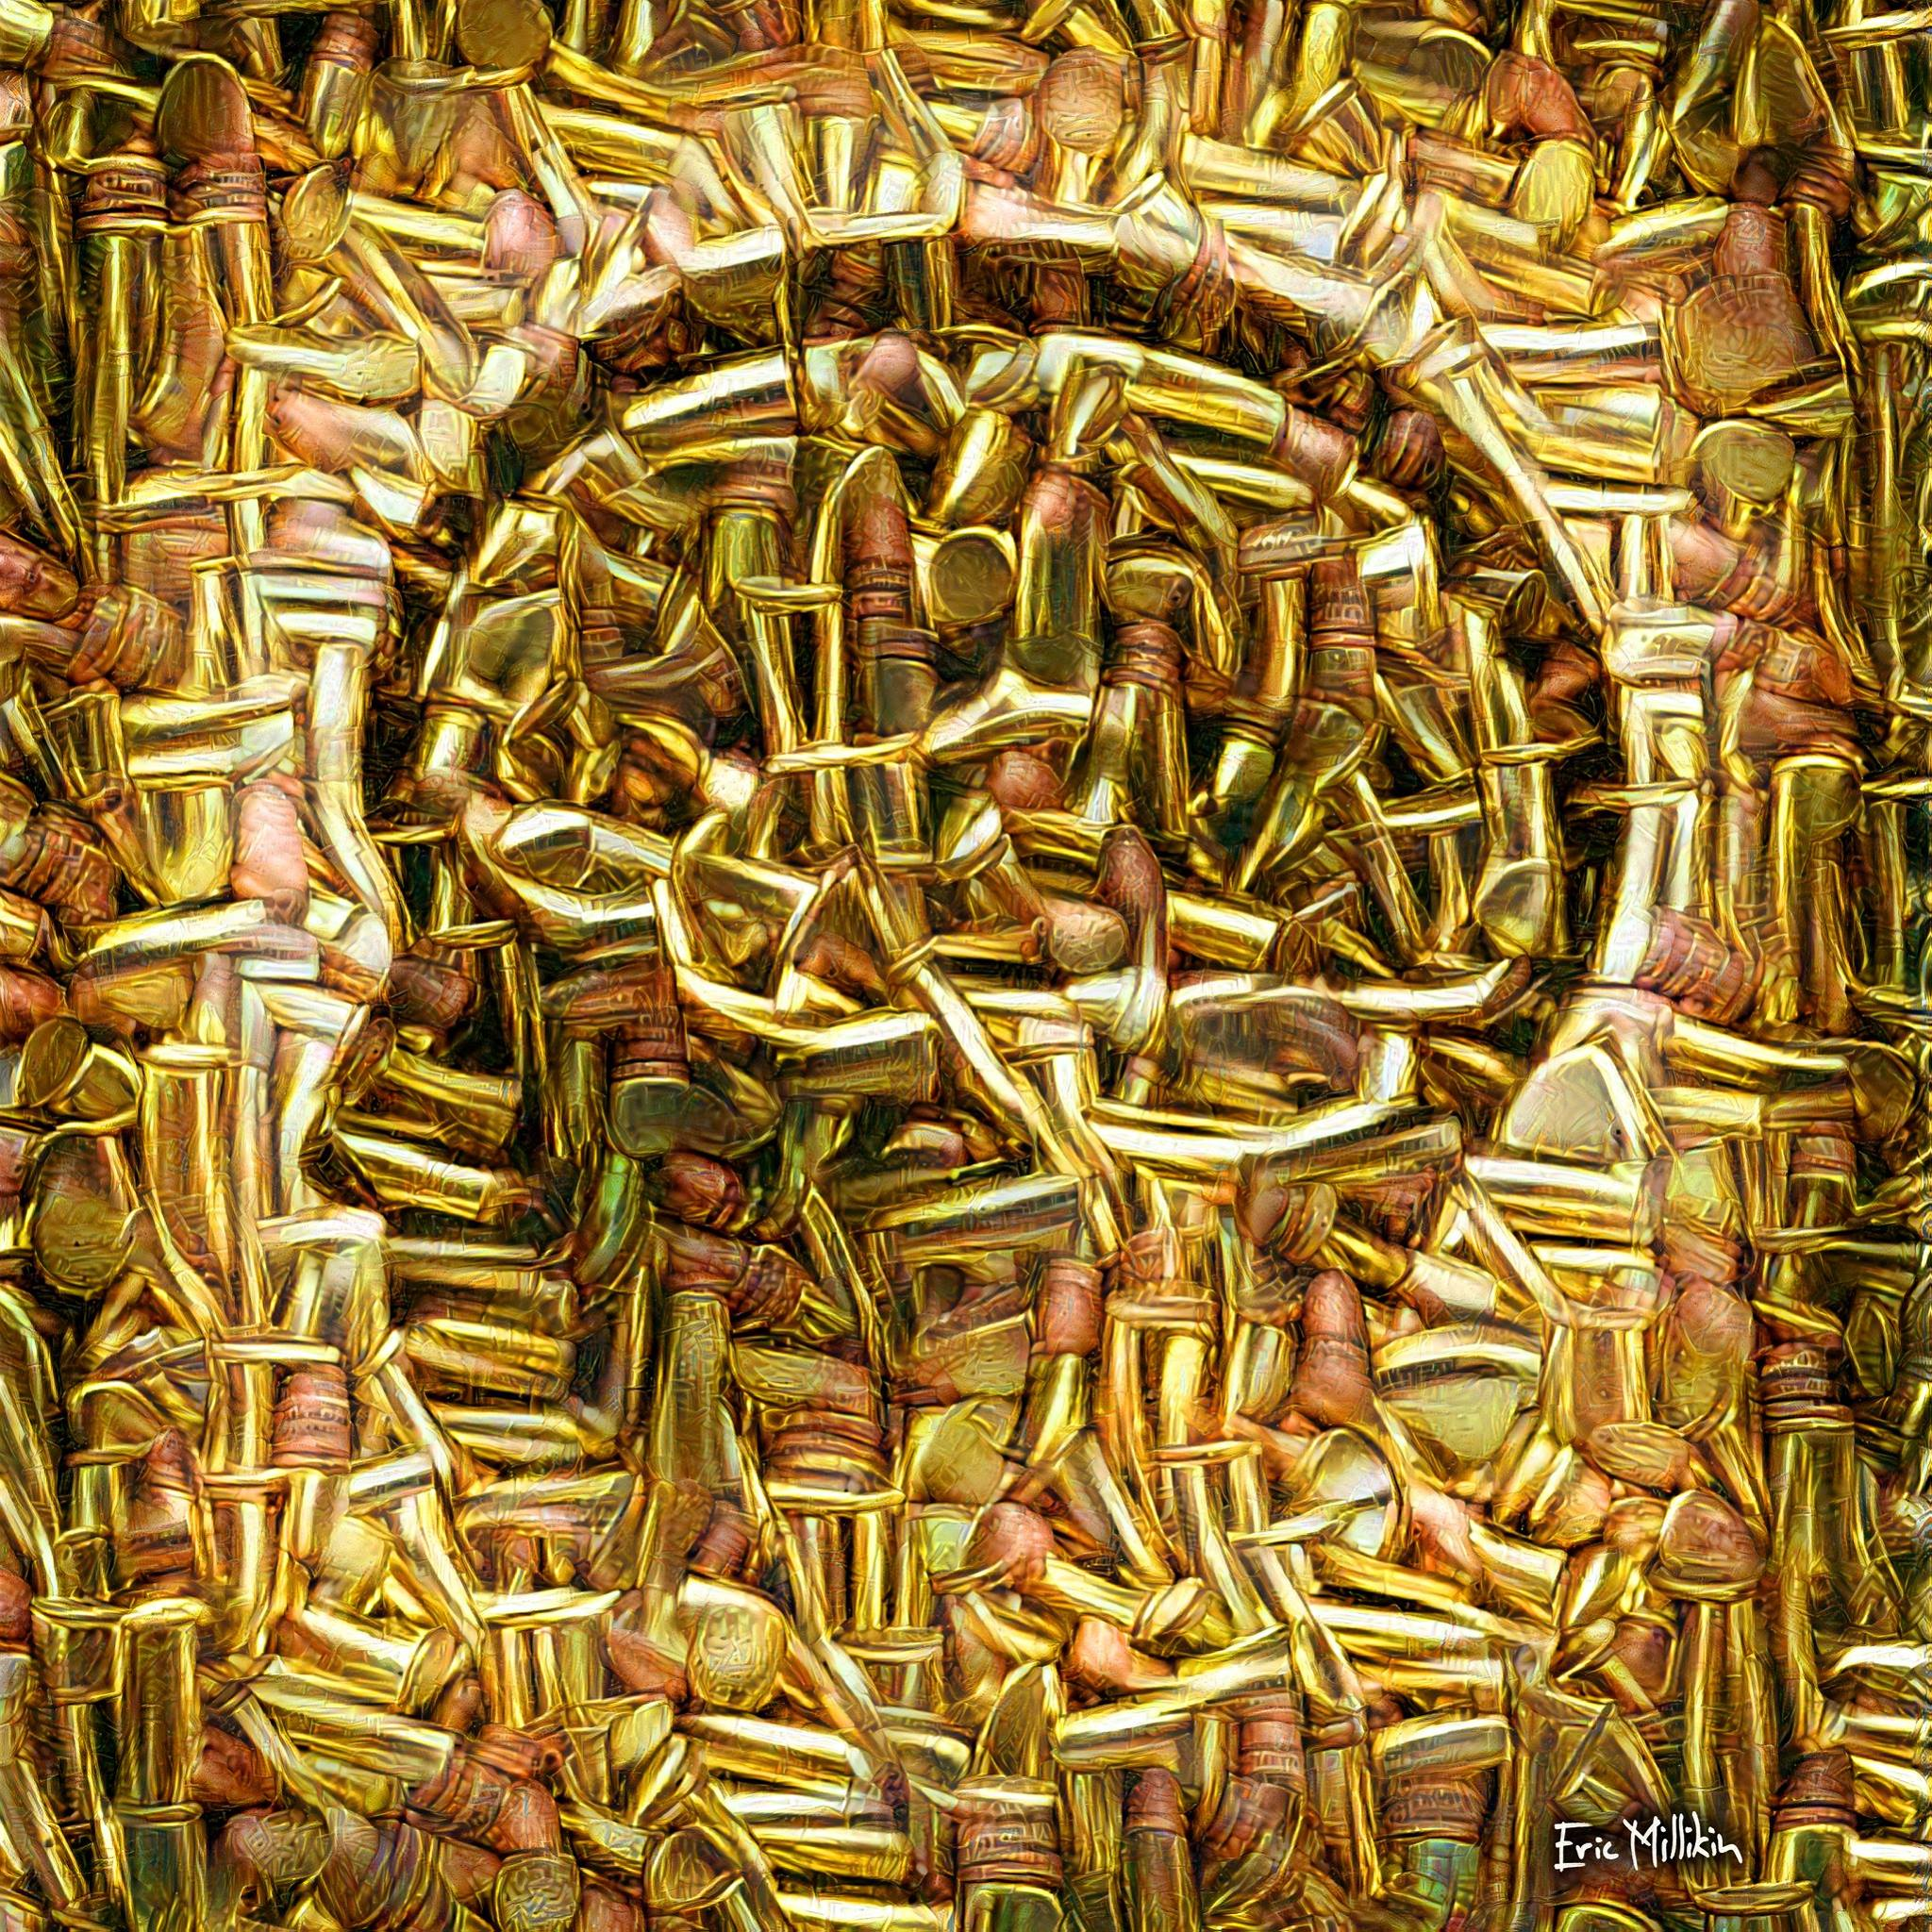 Portrait of the human mind made from melted bullets. Thinking about a lot of things while working on this, mostly what great things we could do if we used our brains more and our bullets less.   2017